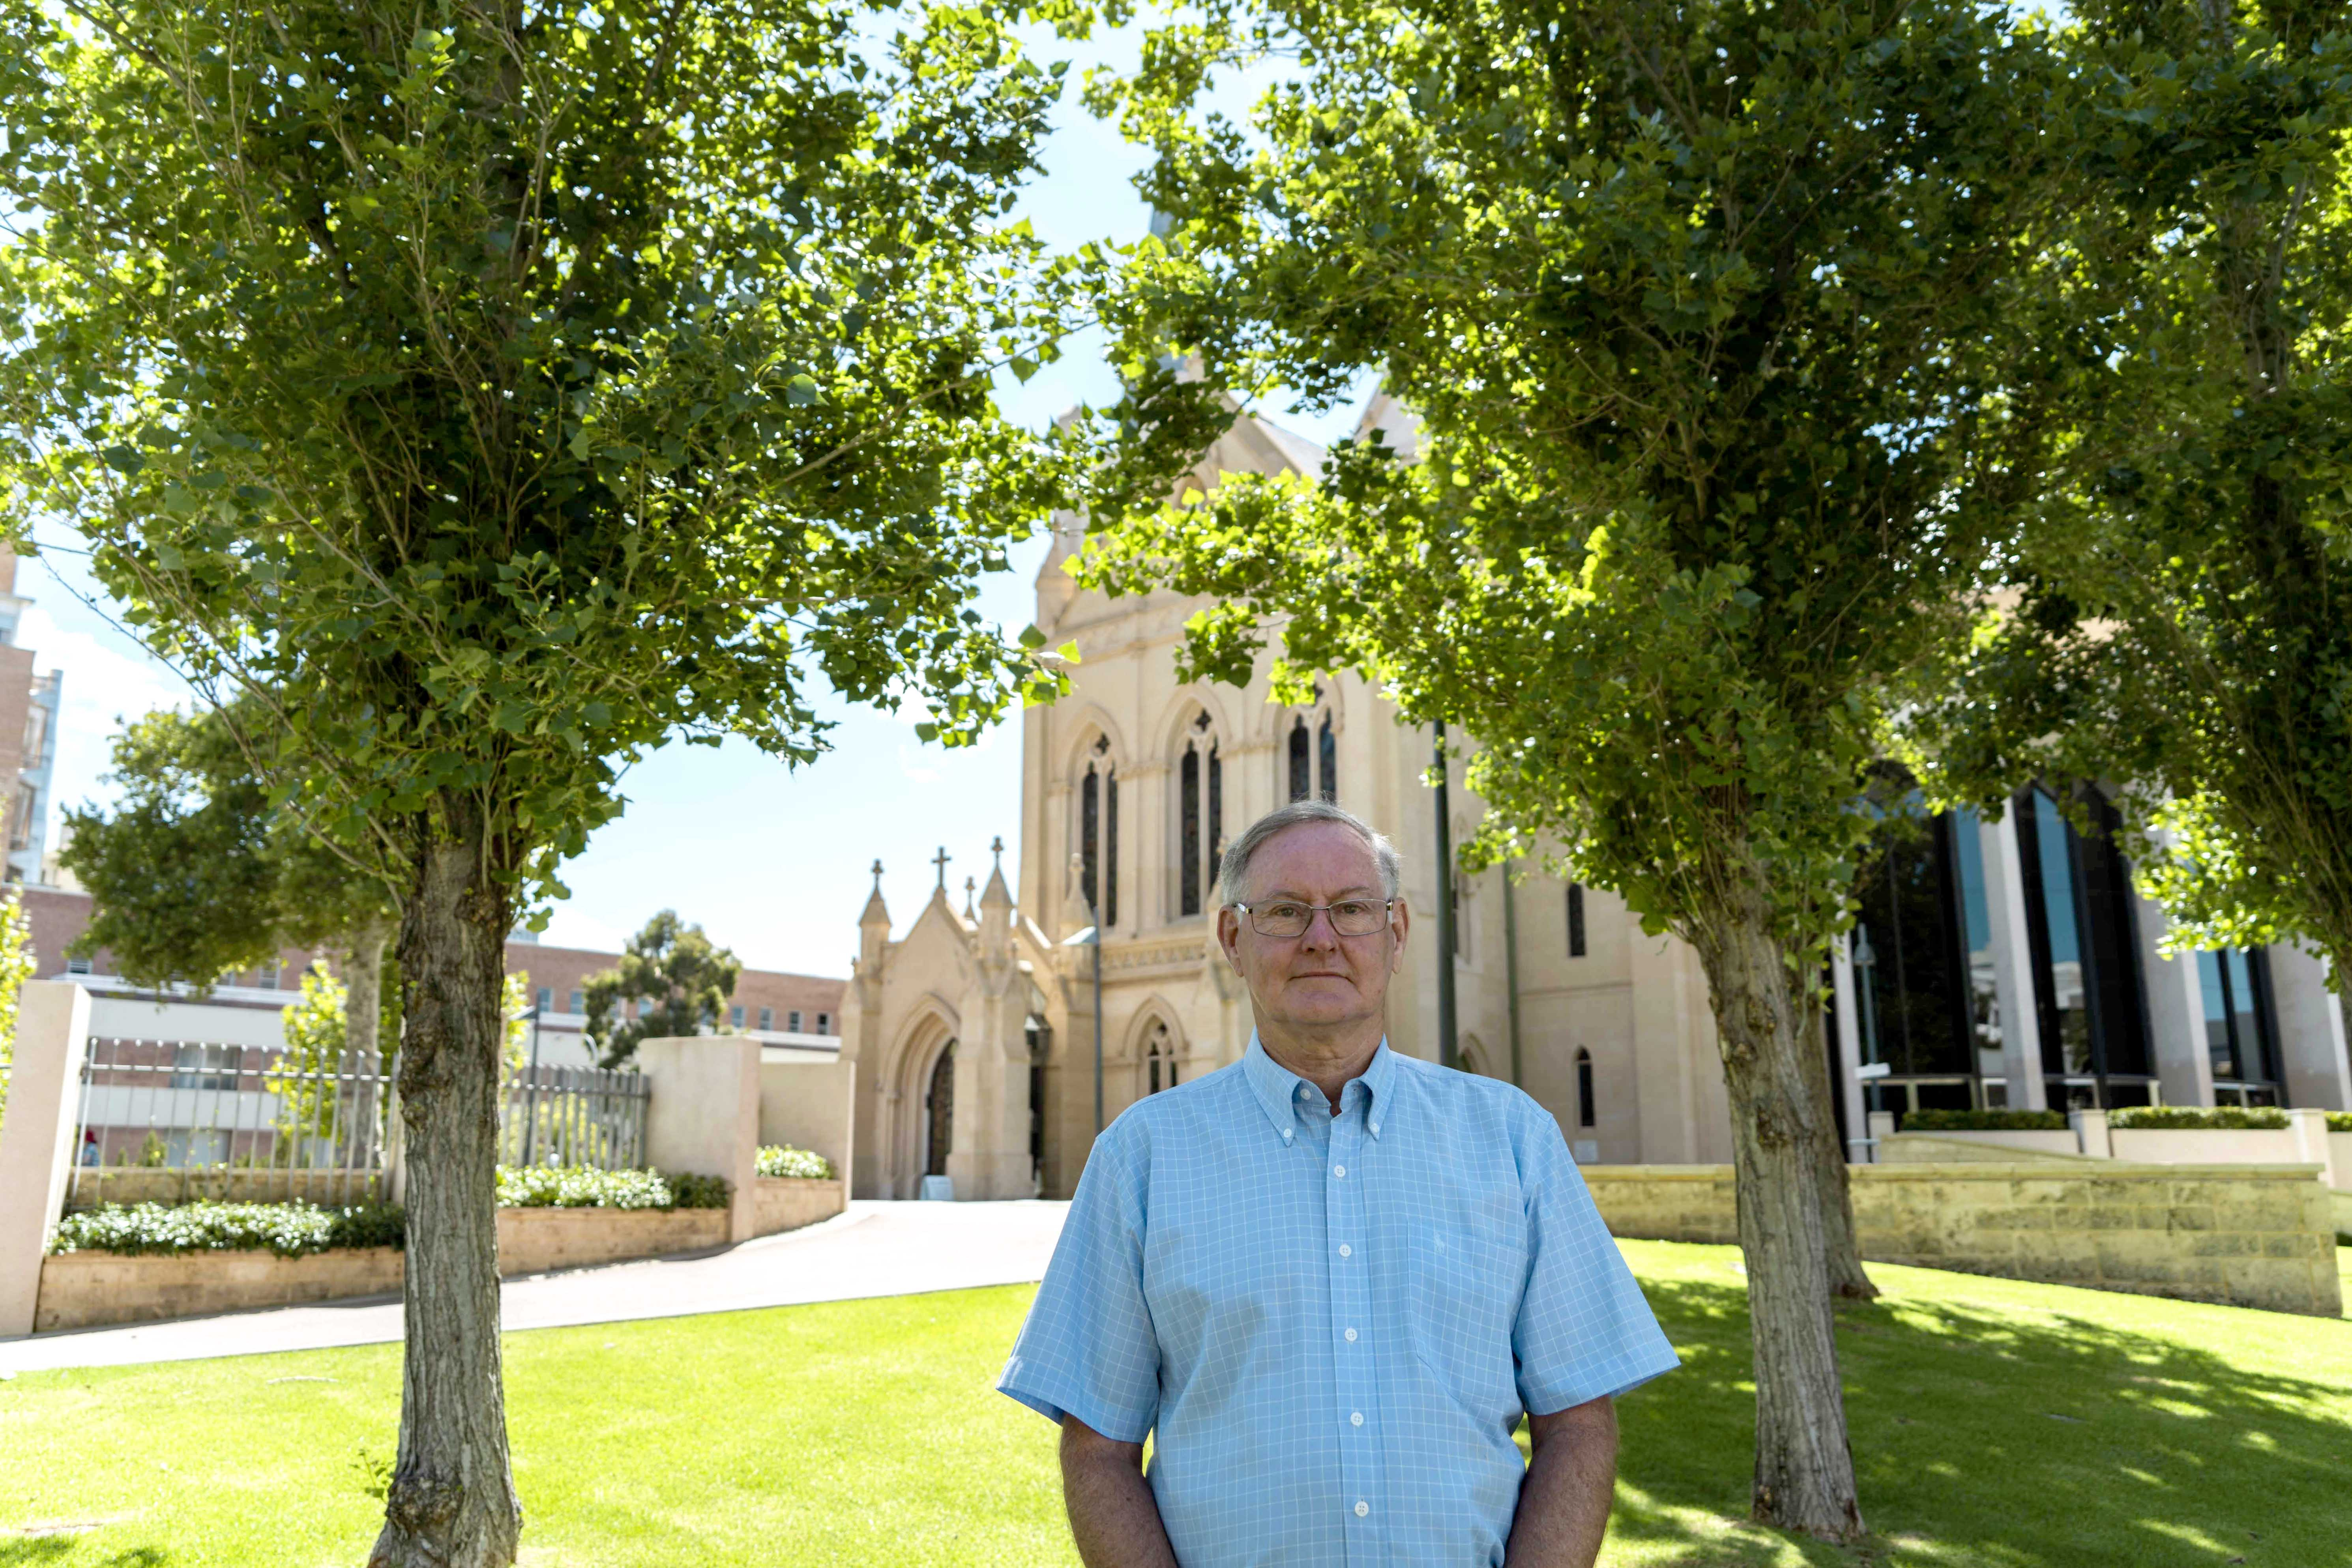 Peter McMinn was the Director of Perth Archdiocese agency Catholic Outreach for 20 years. Photo: Olivia Bunter.